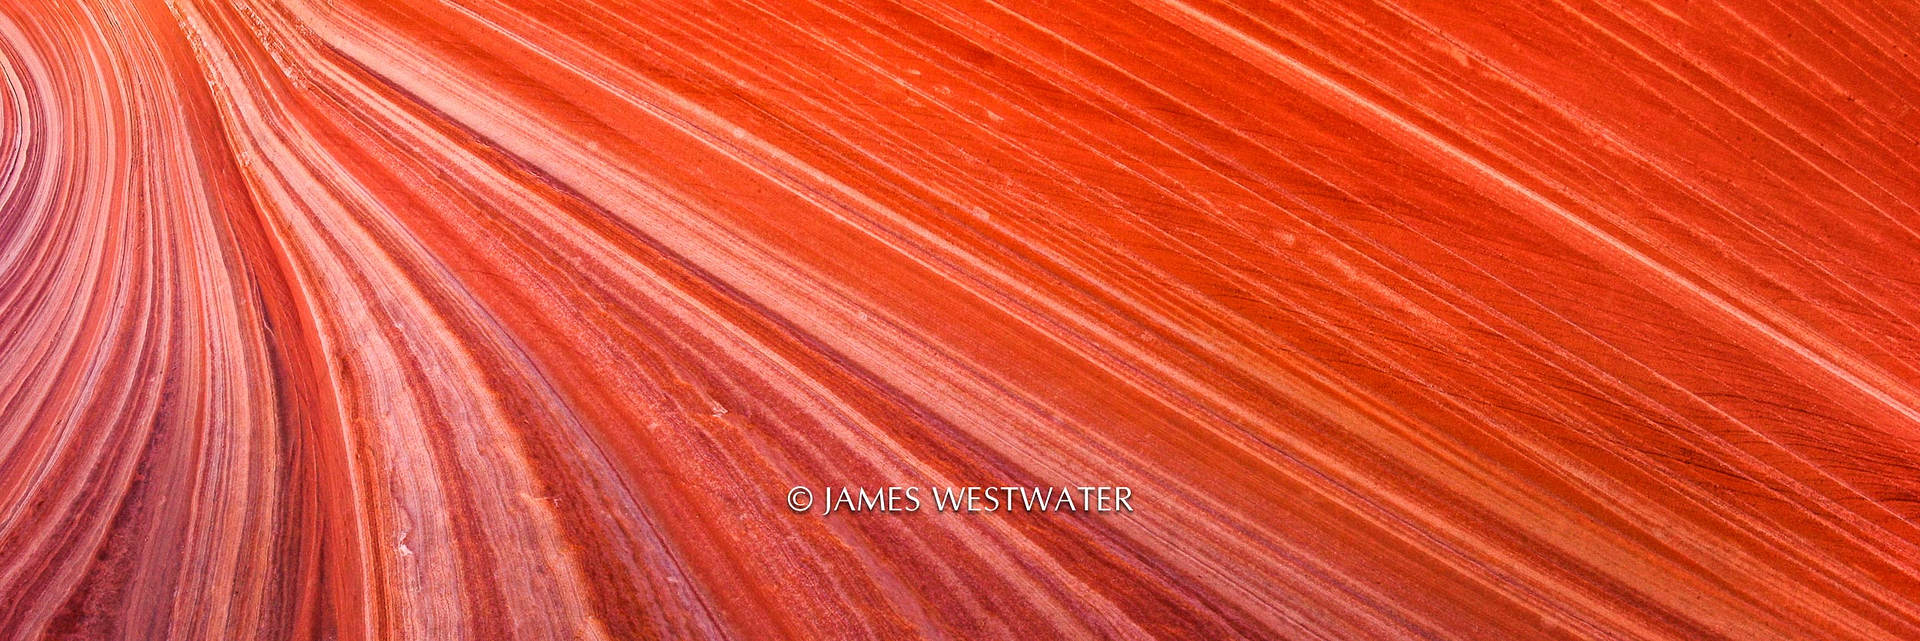 Wave Stripes, Coyote Buttes, Utah/Arizona Border